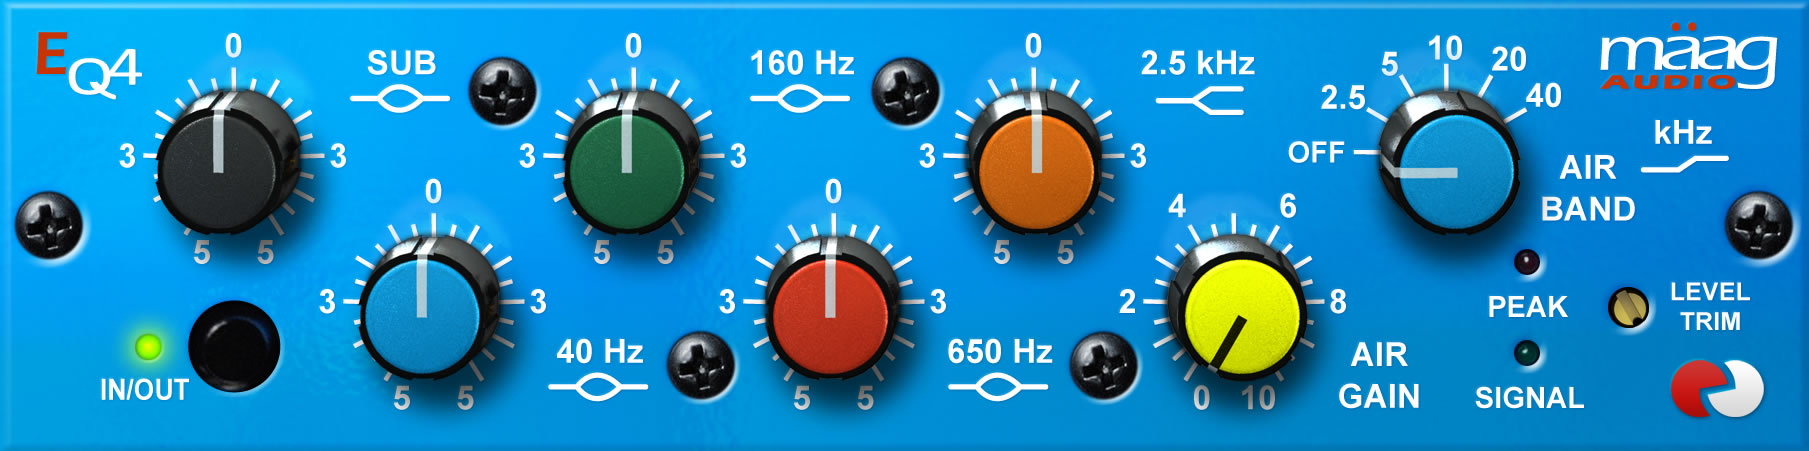 MINI-REVIEW: PLUGIN ALLIANCE'S MAAG AUDIO EQ4